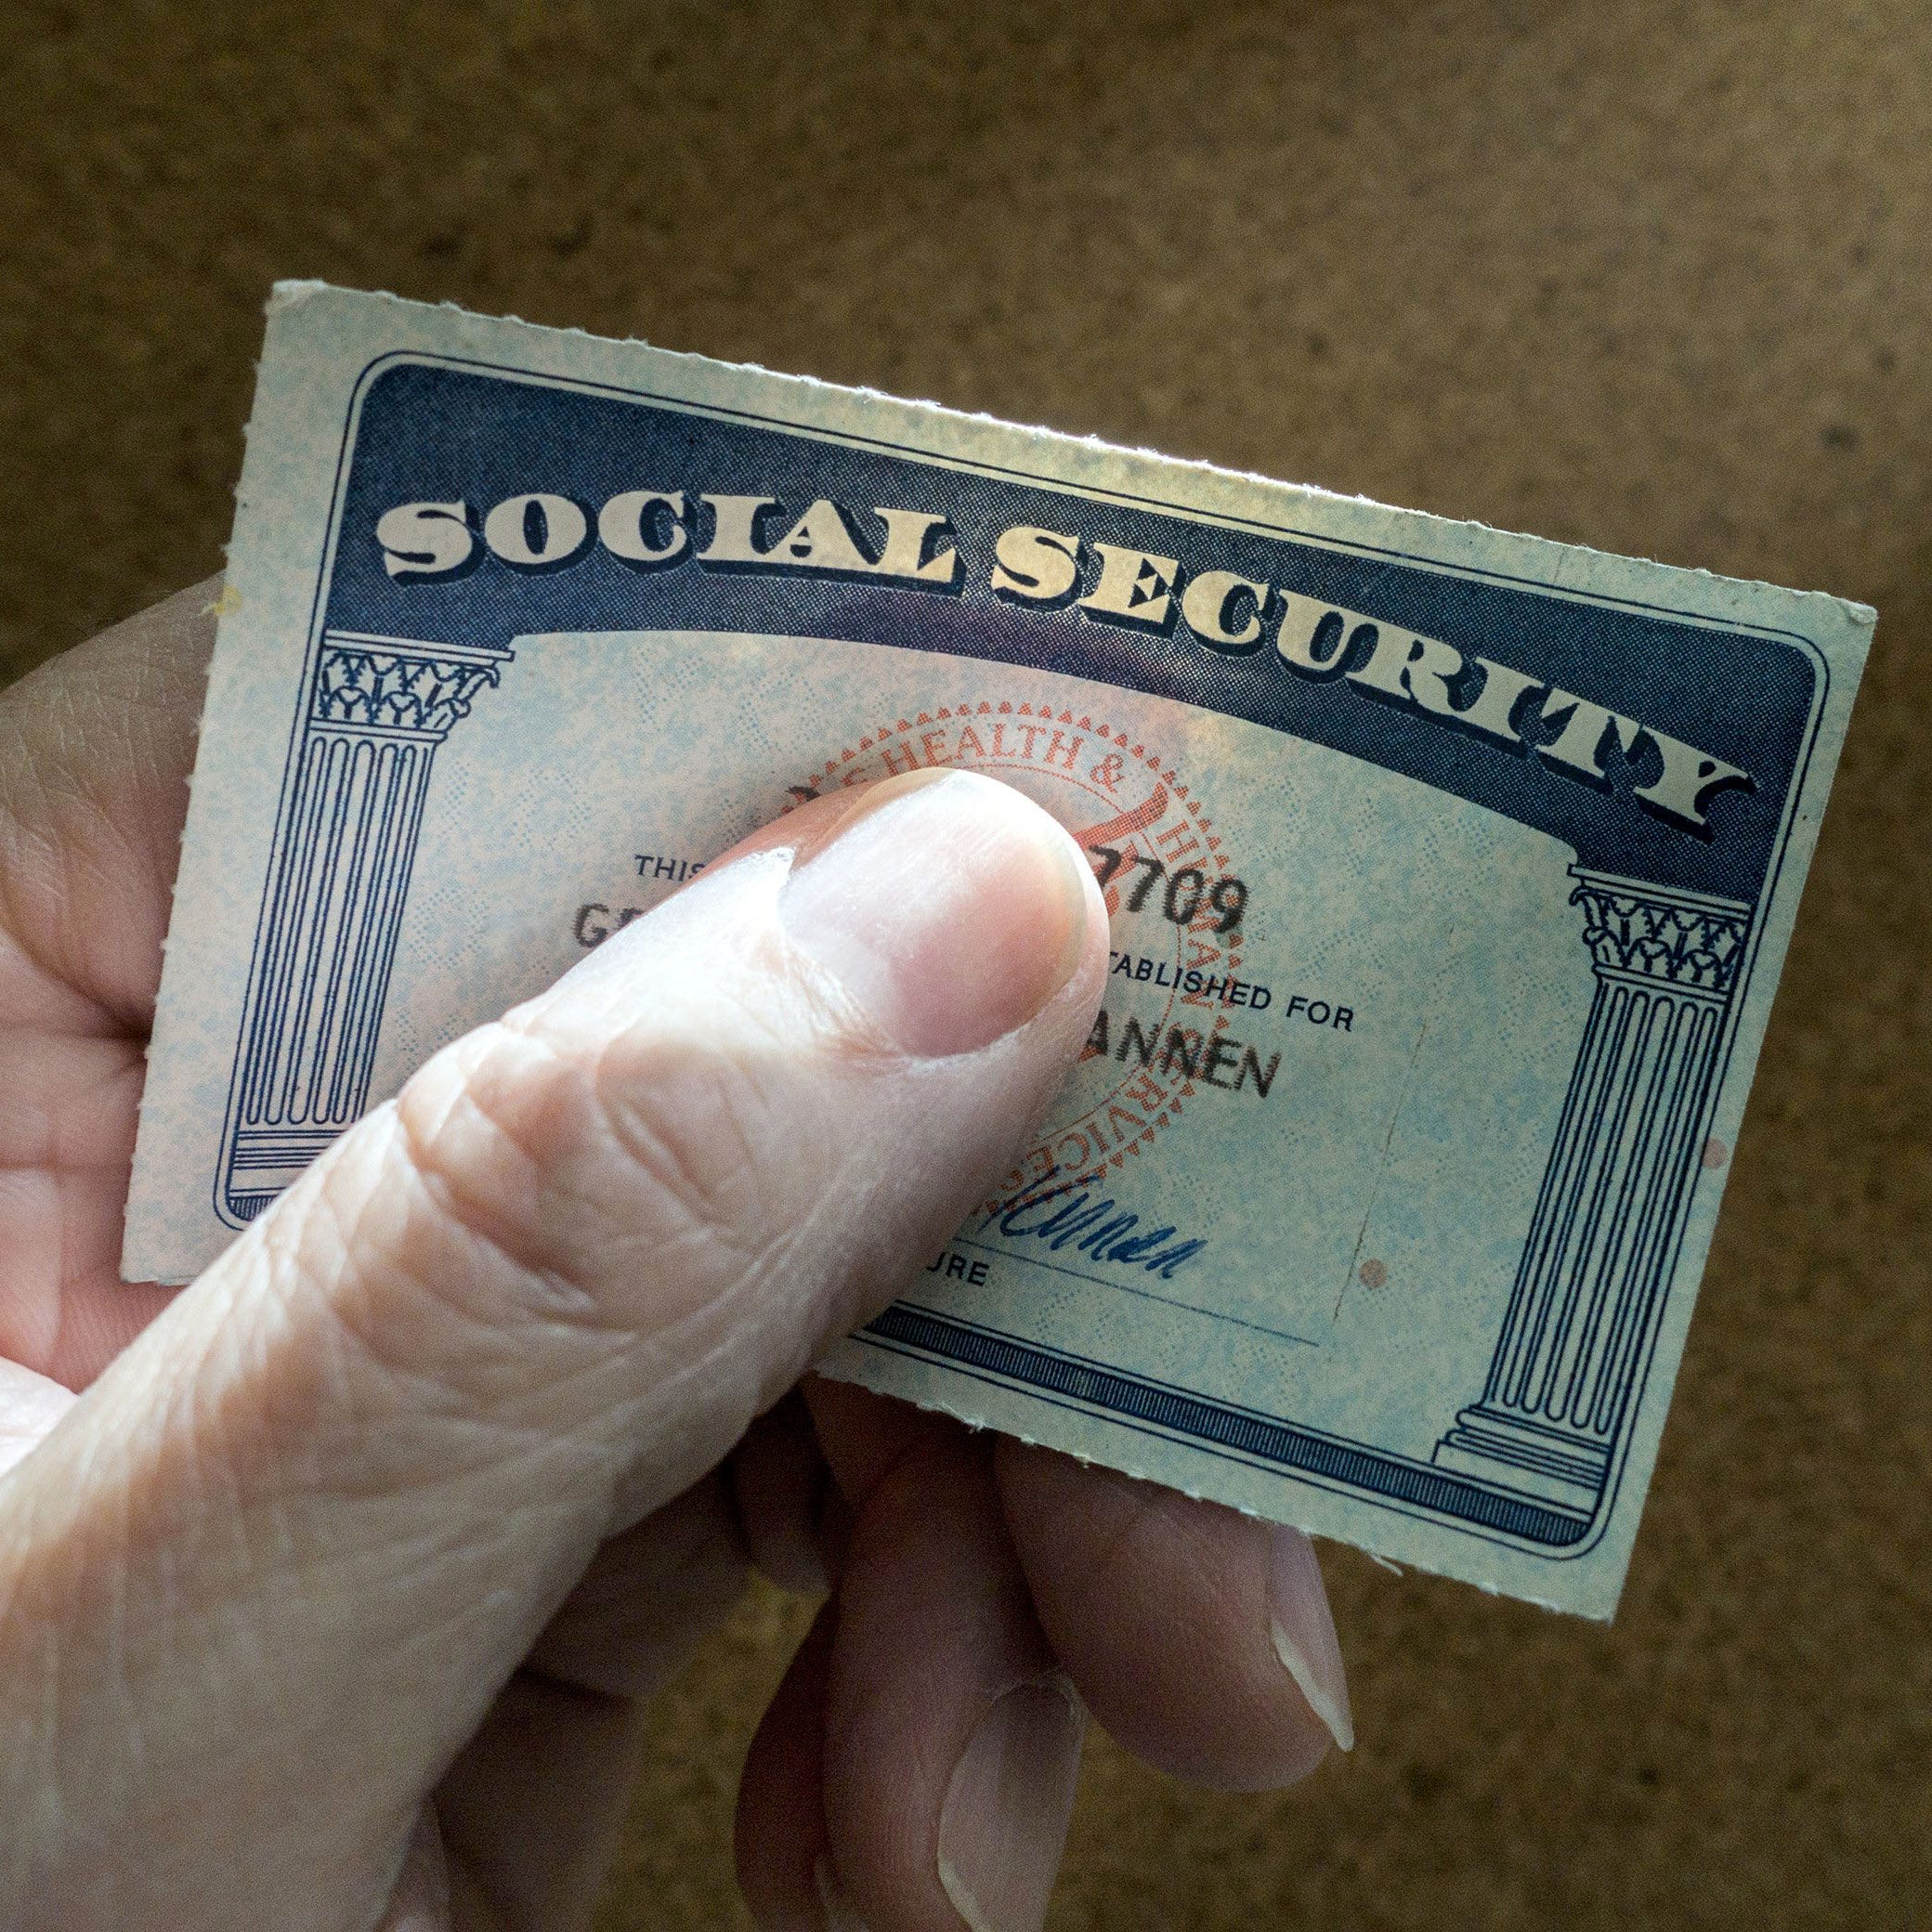 Watch out, the Social Security scam is looking like the new IRS scam.